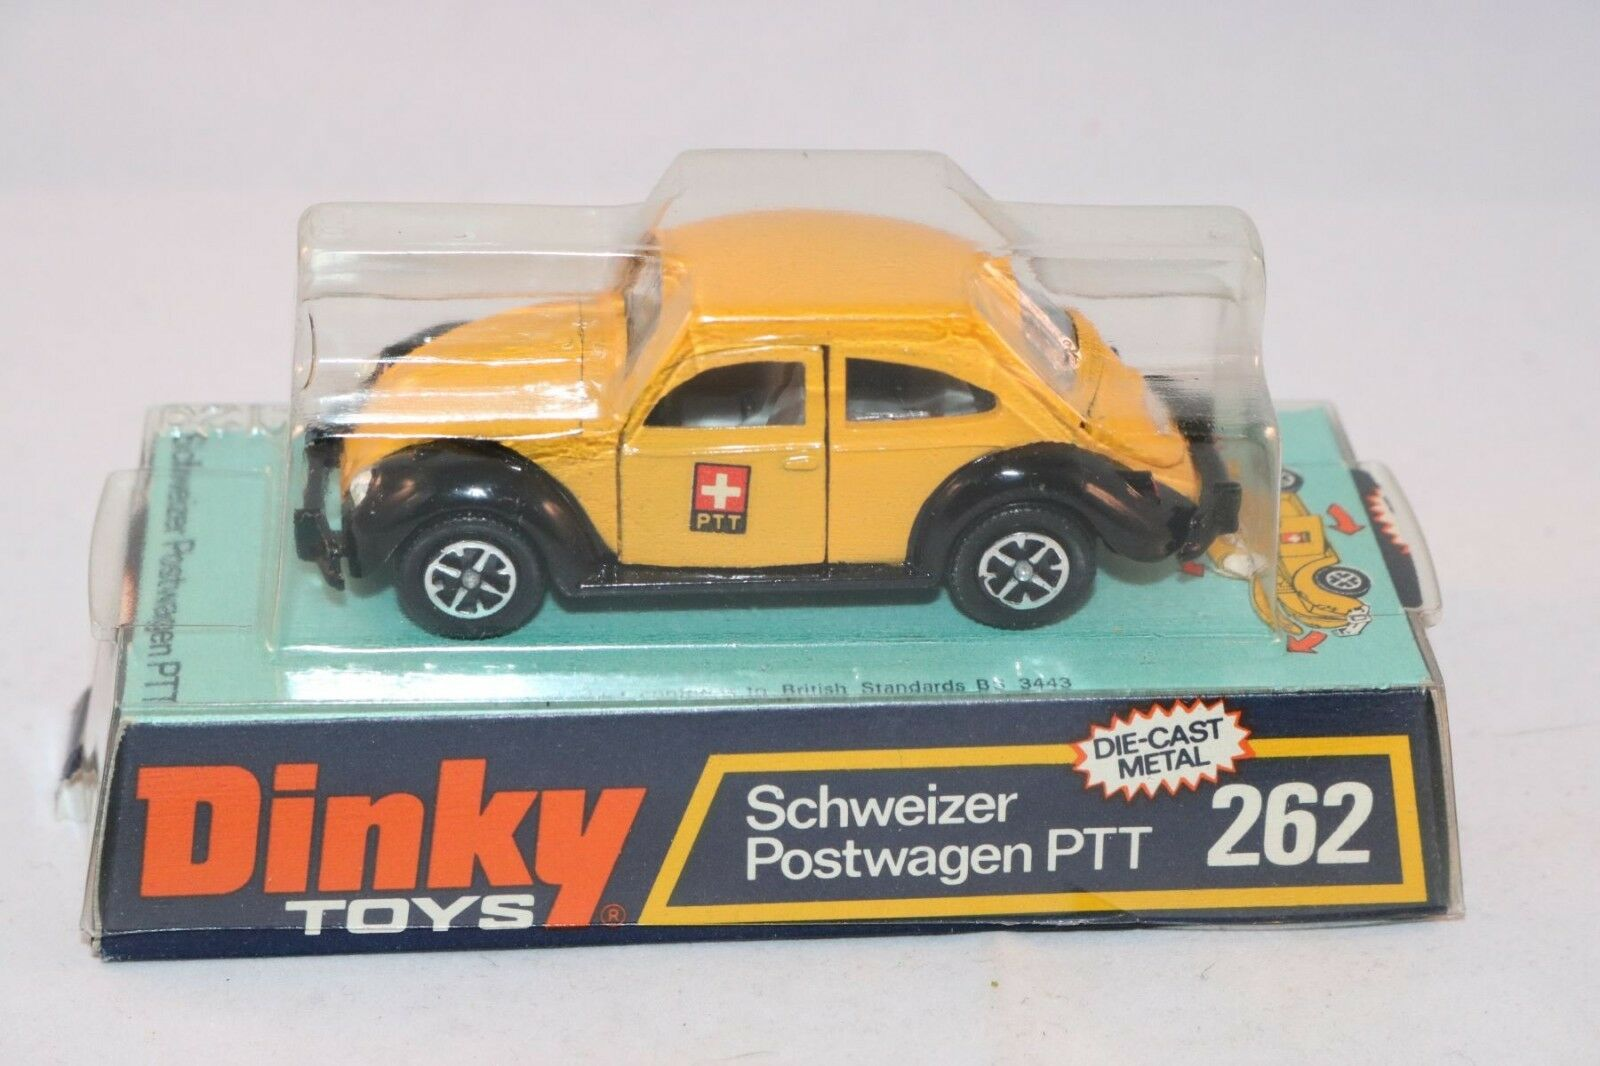 Dinky Toys 262 Schweizer Postwagen PTT perfect mint in box a superb example